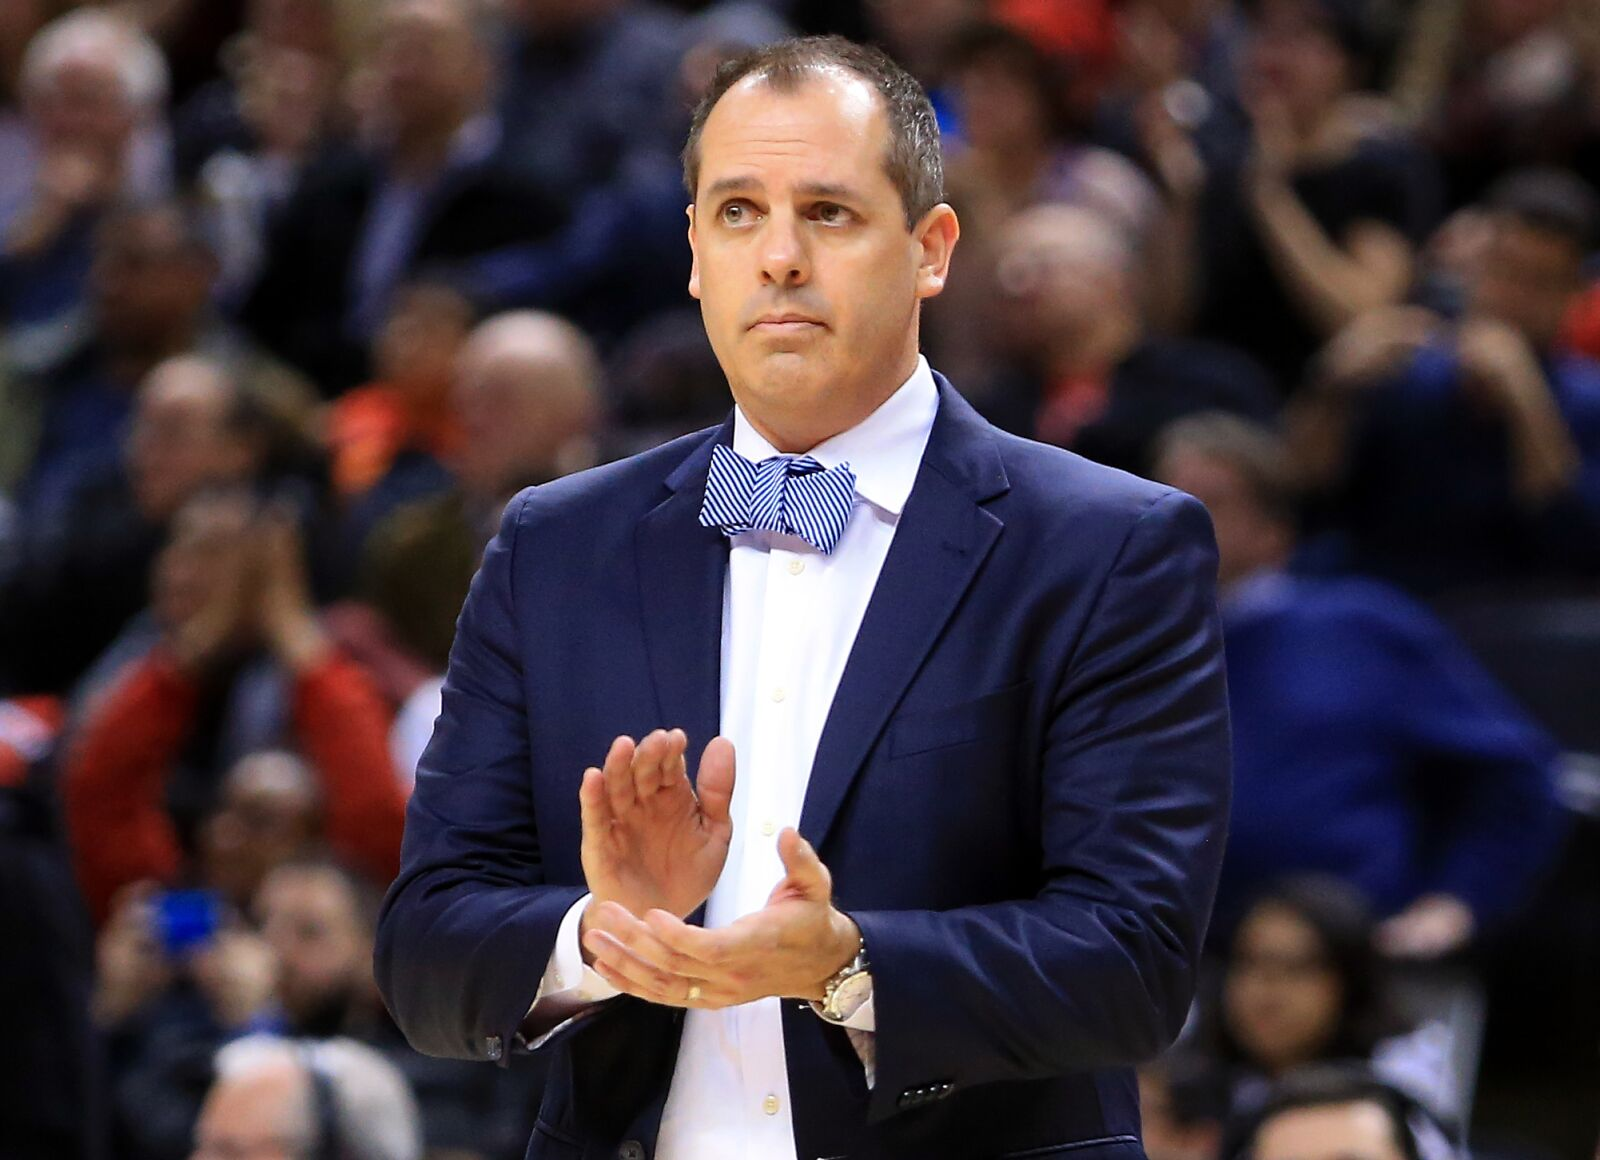 New York Knicks: Pros and cons of hiring Frank Vogel as head coach